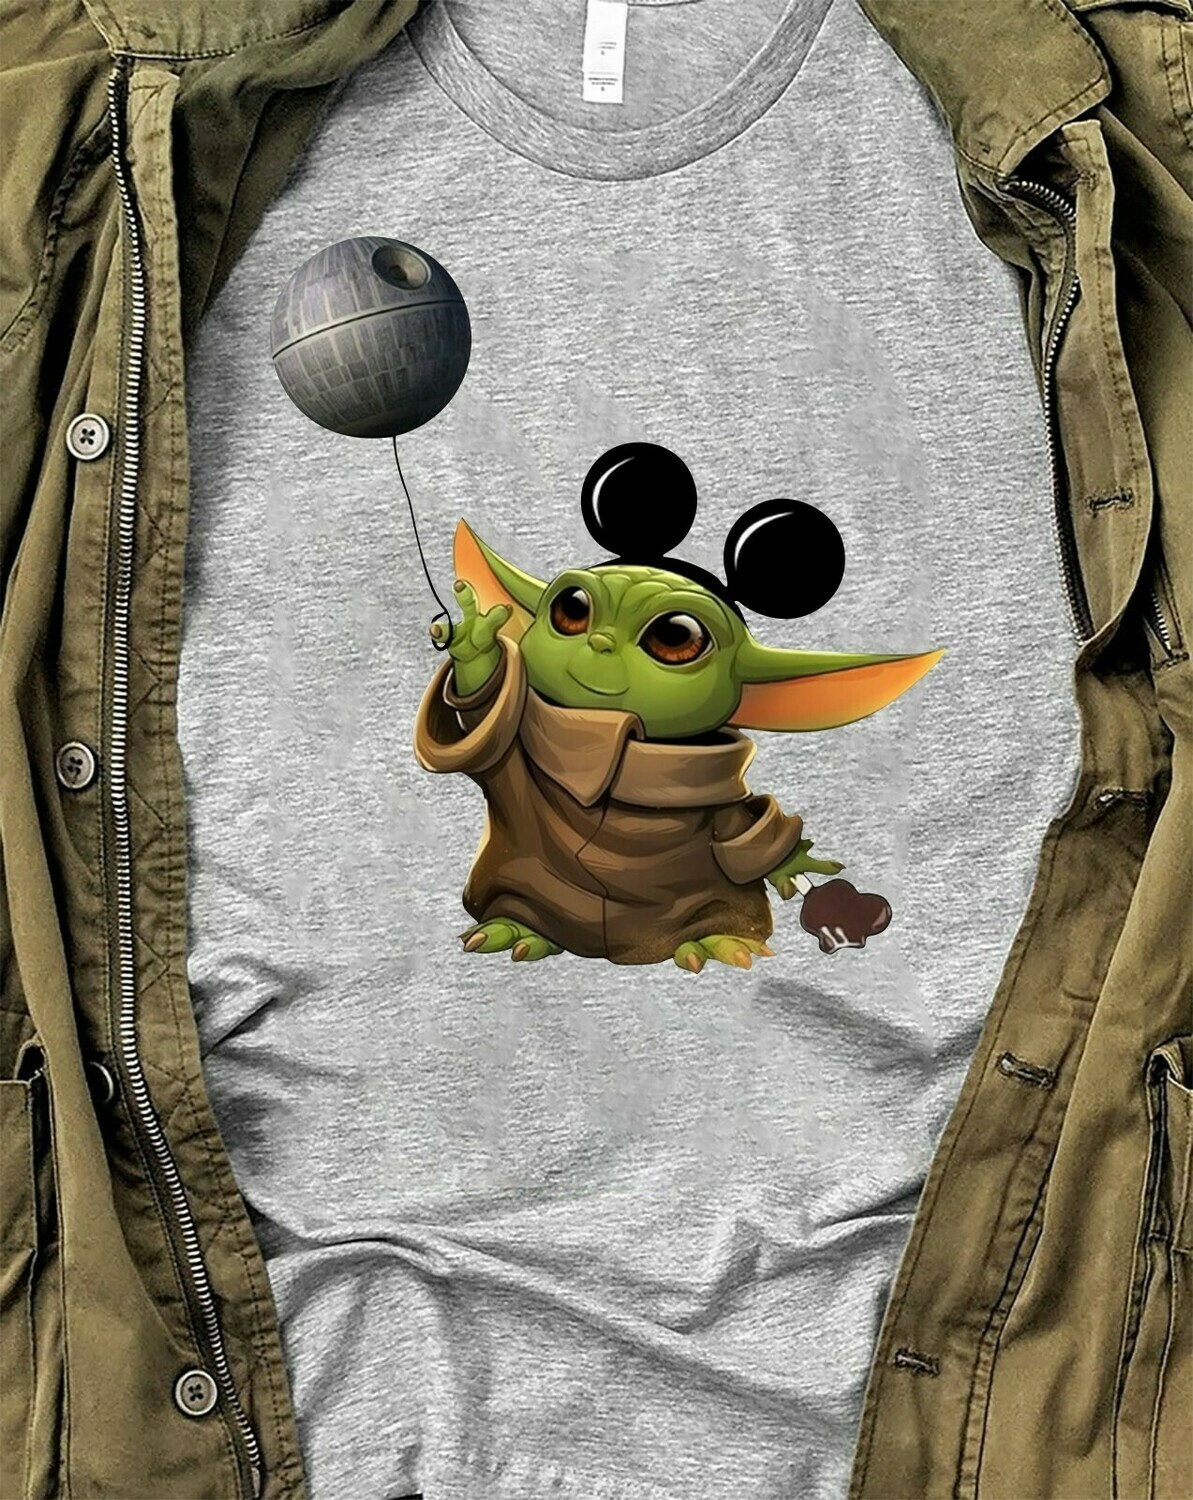 Vacay Mode Baby Yoda Disney The Mandalorian With Death Star Wars Movie Vacay Mode Lovely Mickey T-Shirt Long Sleeve Sweatshirt Hoodie Jolly Family Gifts